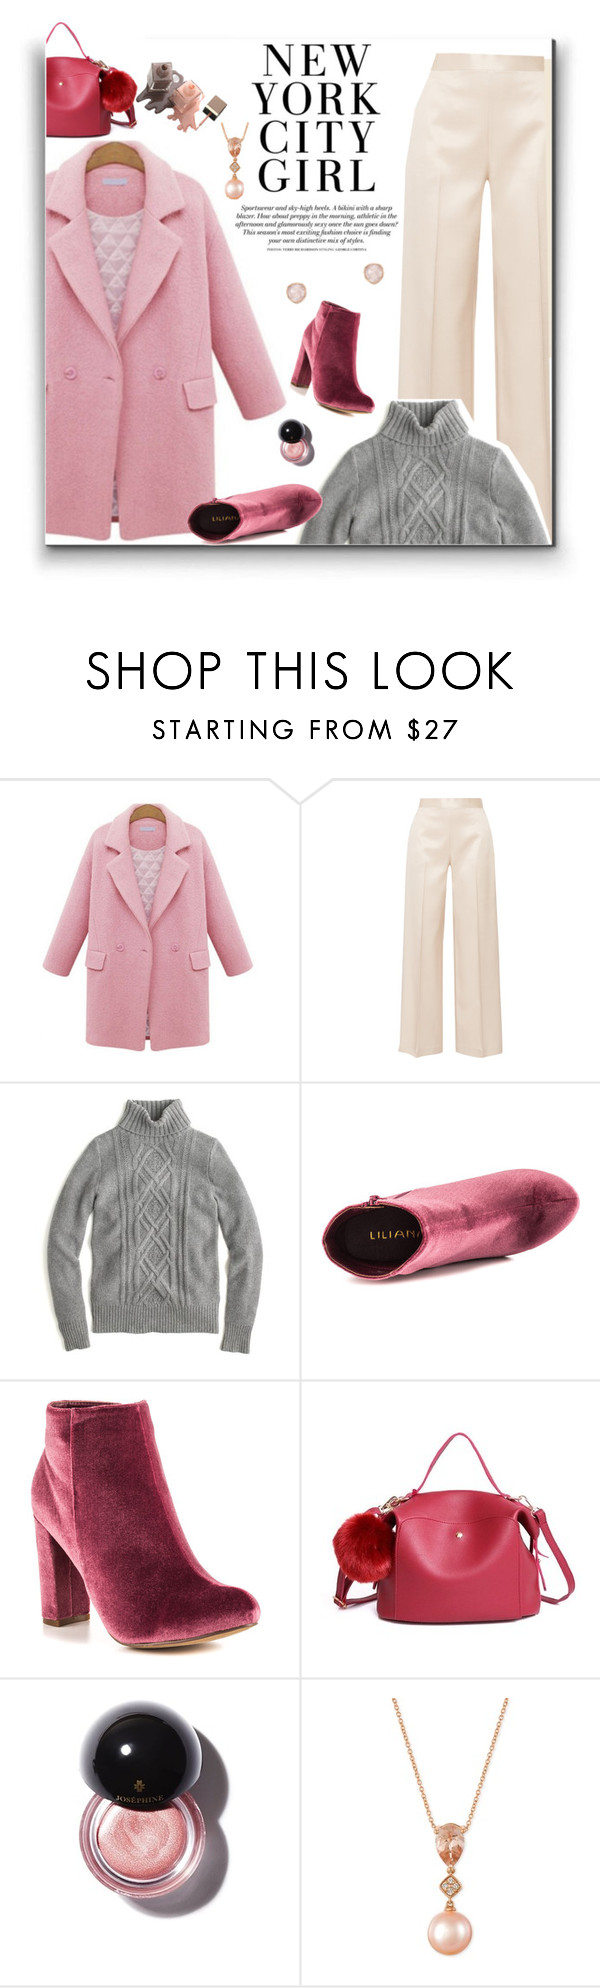 """""""632"""" by believelikebreathing ❤ liked on Polyvore featuring The Row, J.Crew, Liliana, LE VIAN, Monica Vinader and pinkcoats"""